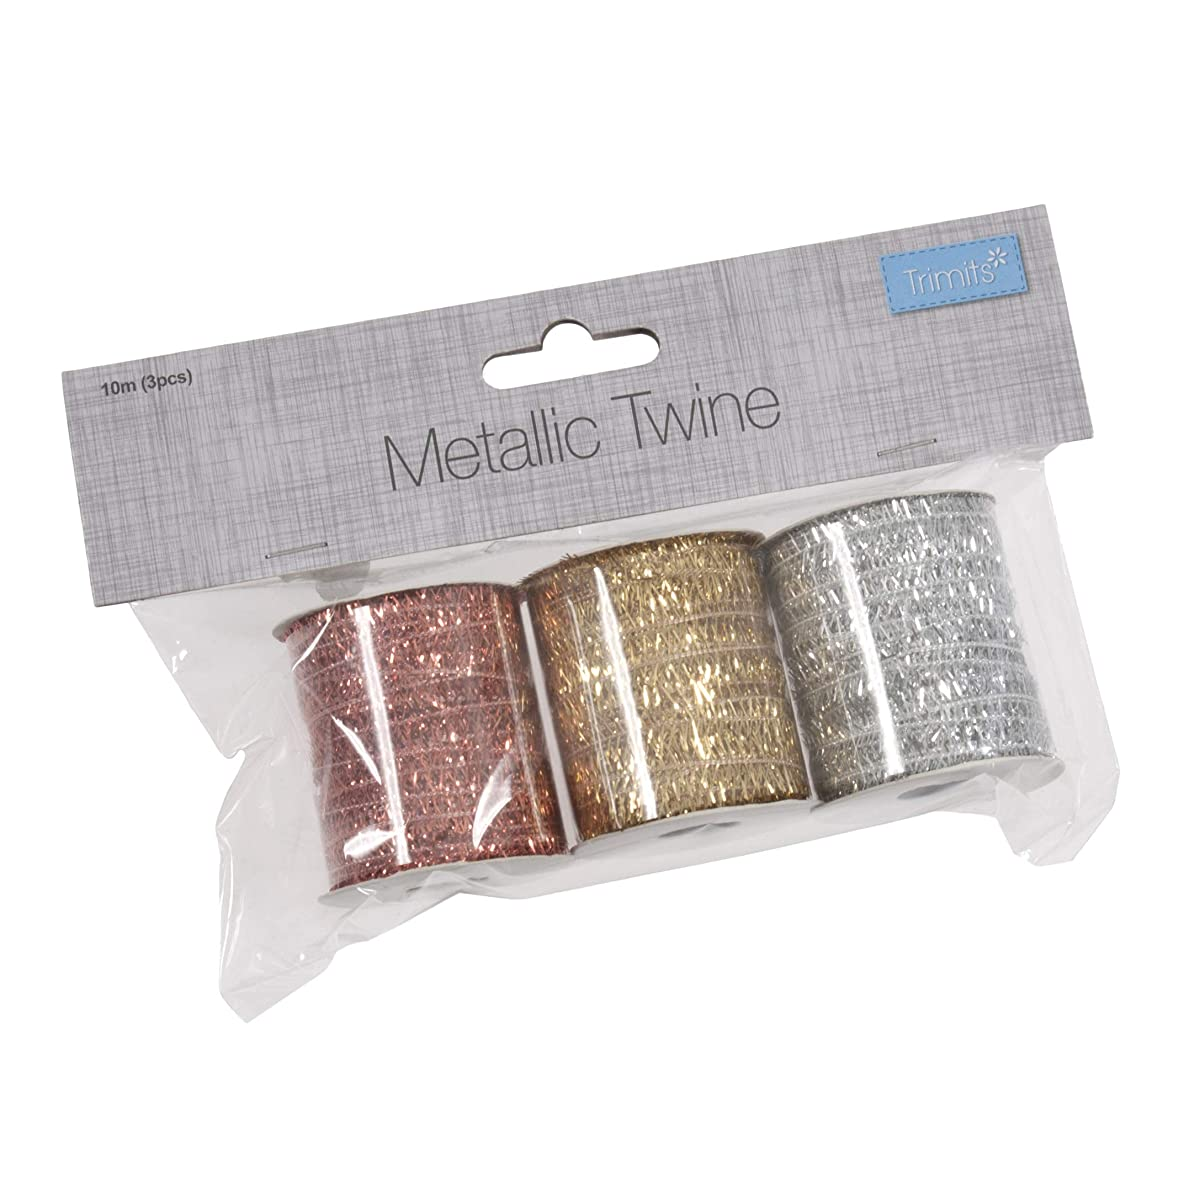 Trimits Metallic Twine Bag: 10m: Copper, Gold and Silver: 3 Pieces